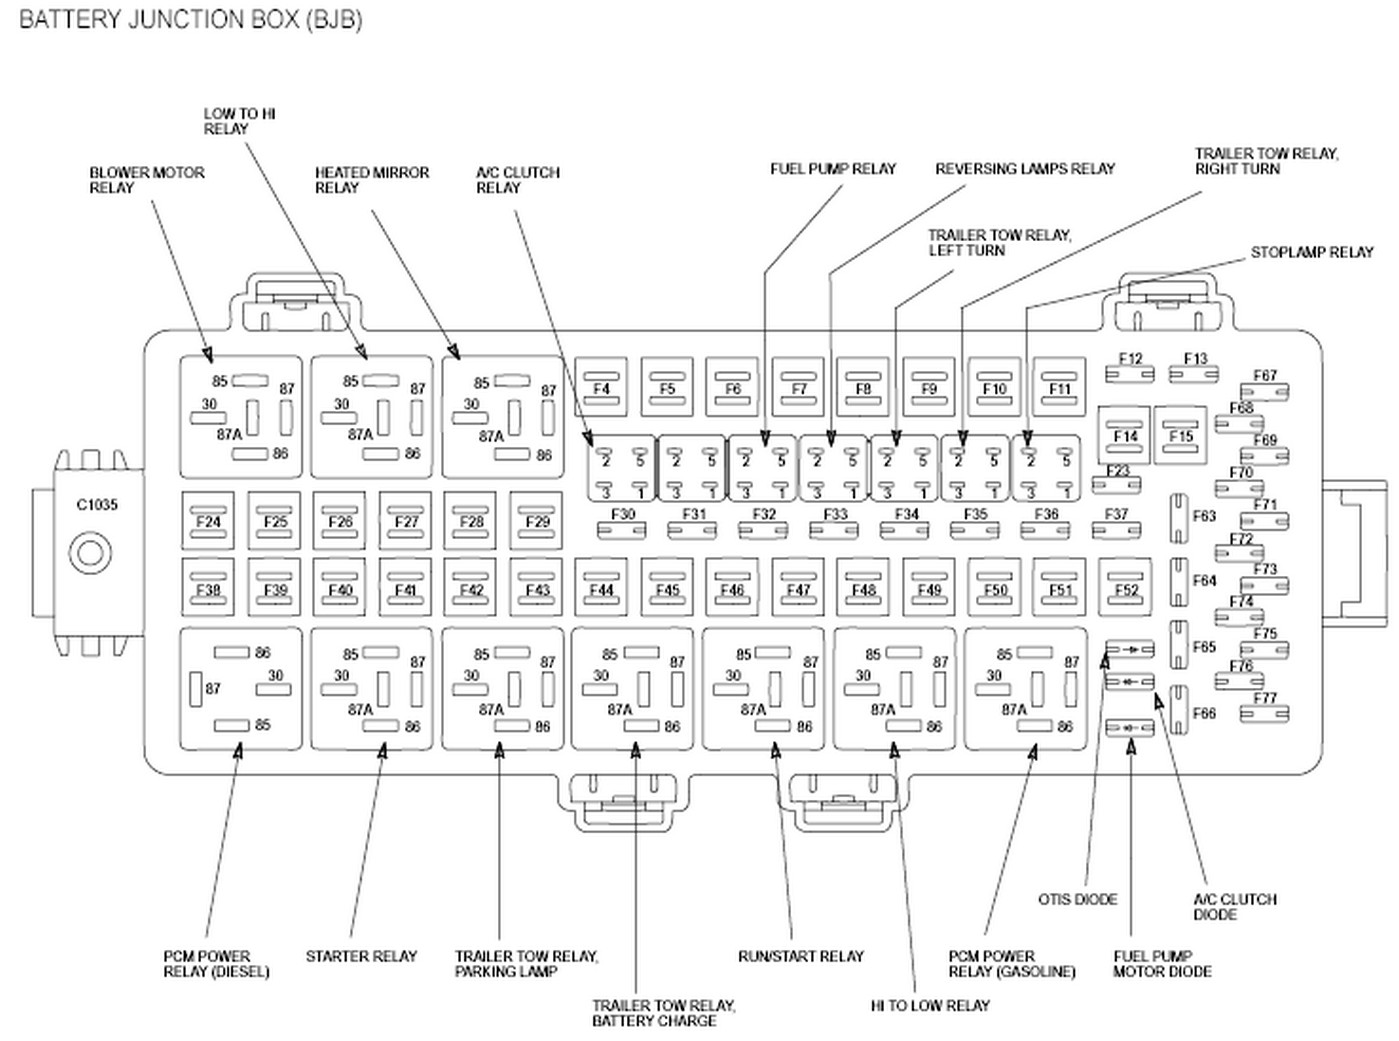 2011 ford f250 fuse box diagram Zoinyhu 2012 f250 fuse box location 2009 ford fusion fuse box diagram 2013 f250 fuse box diagram at nearapp.co